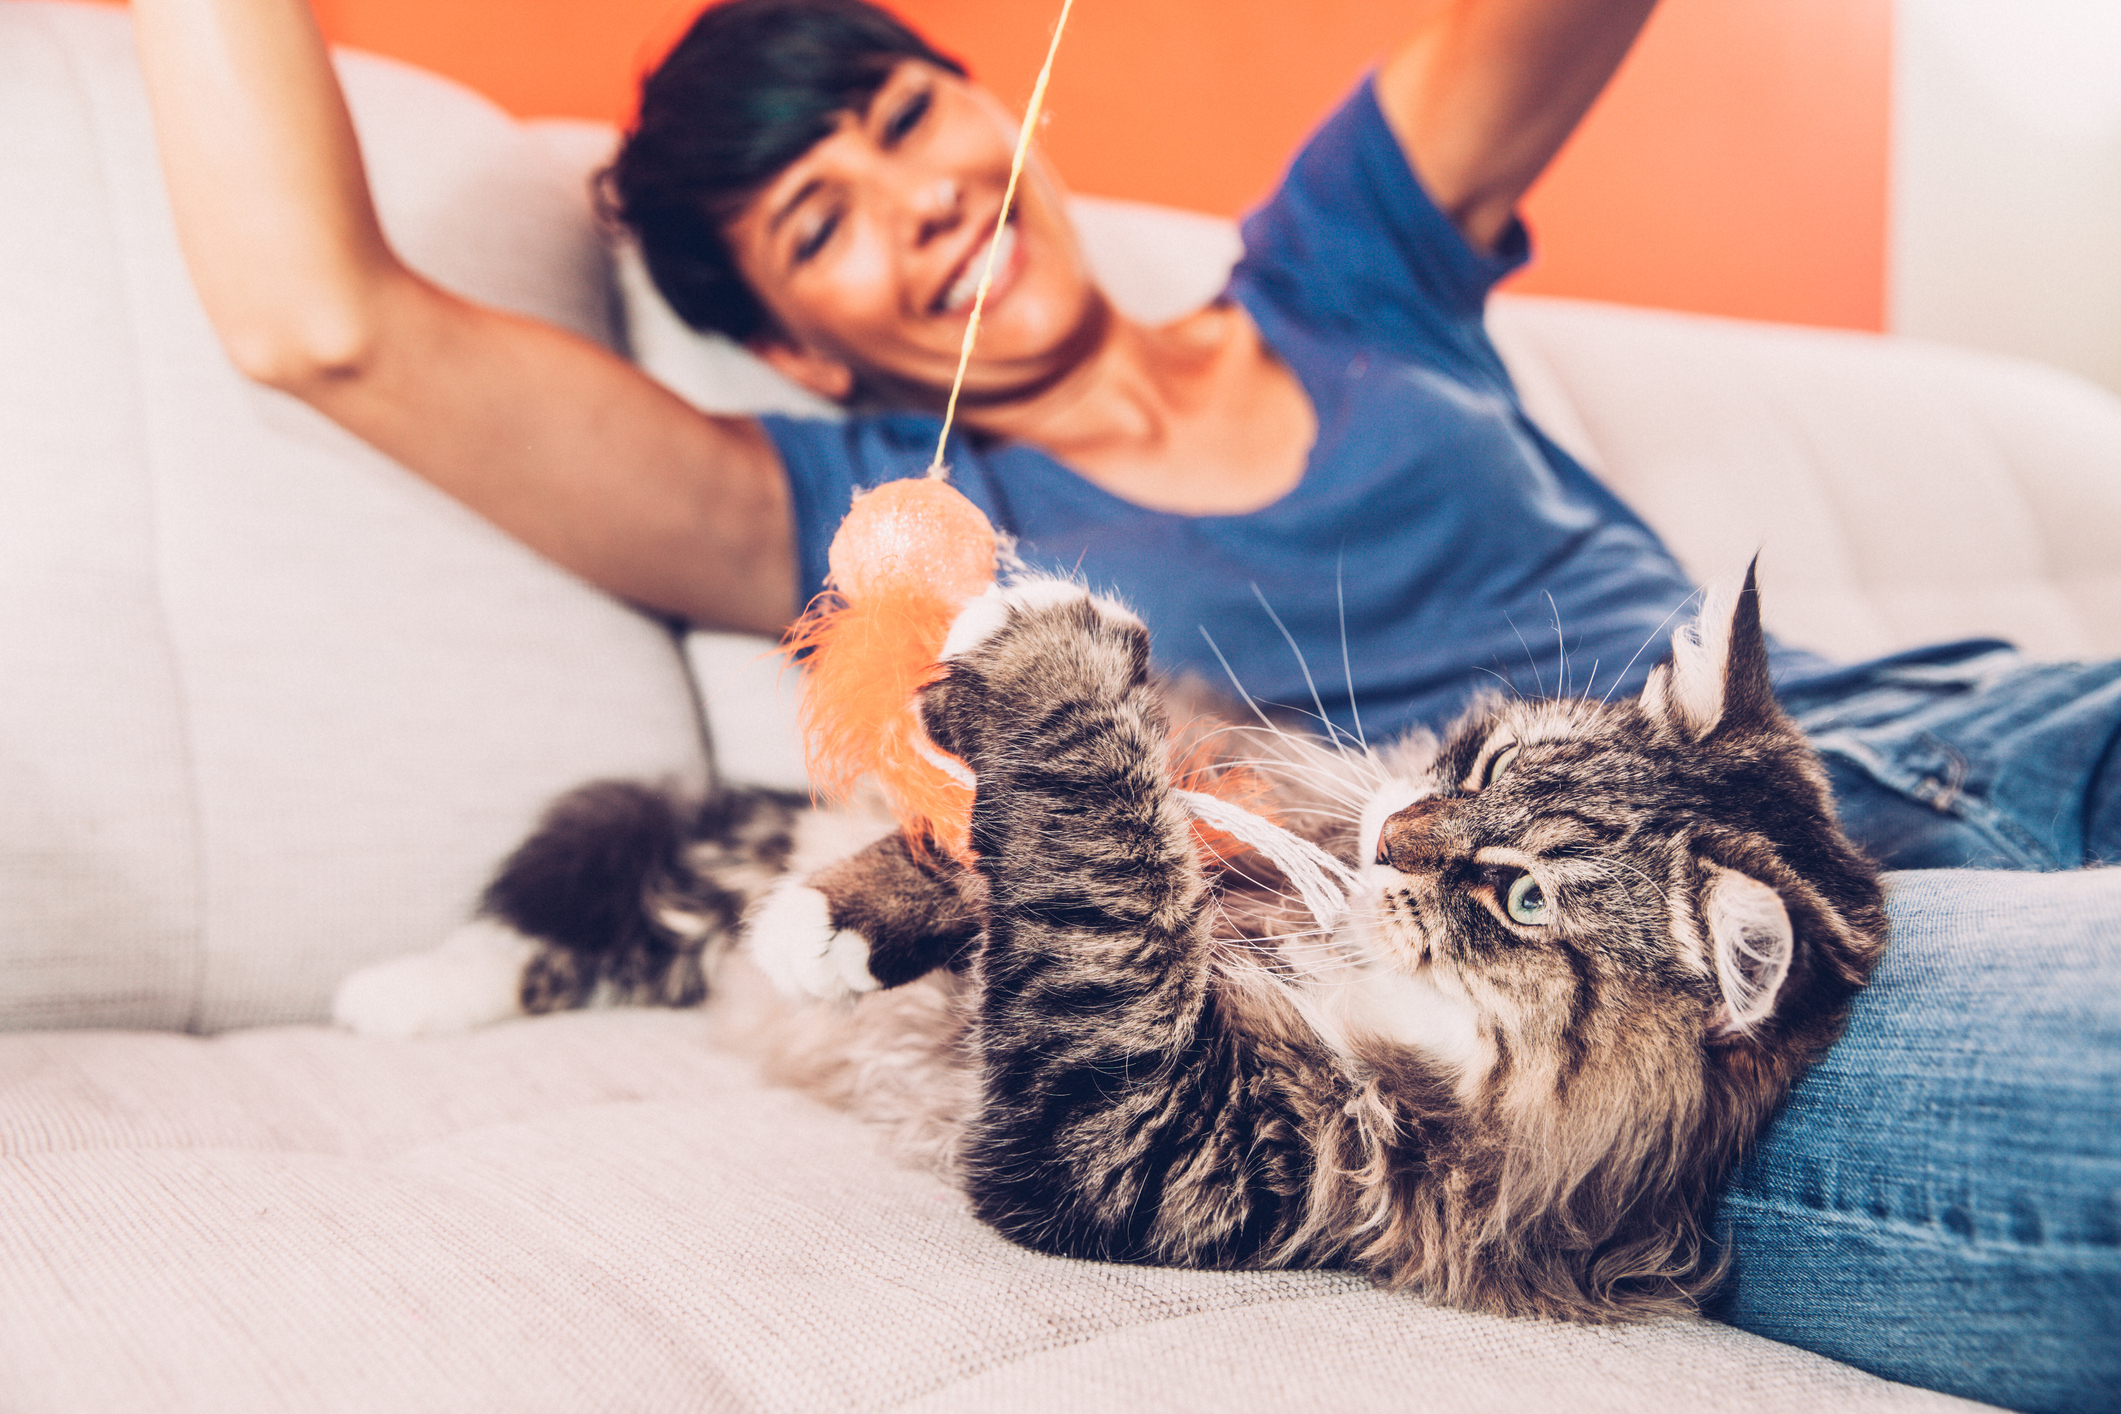 Being a cat lady is good for your health, according to science